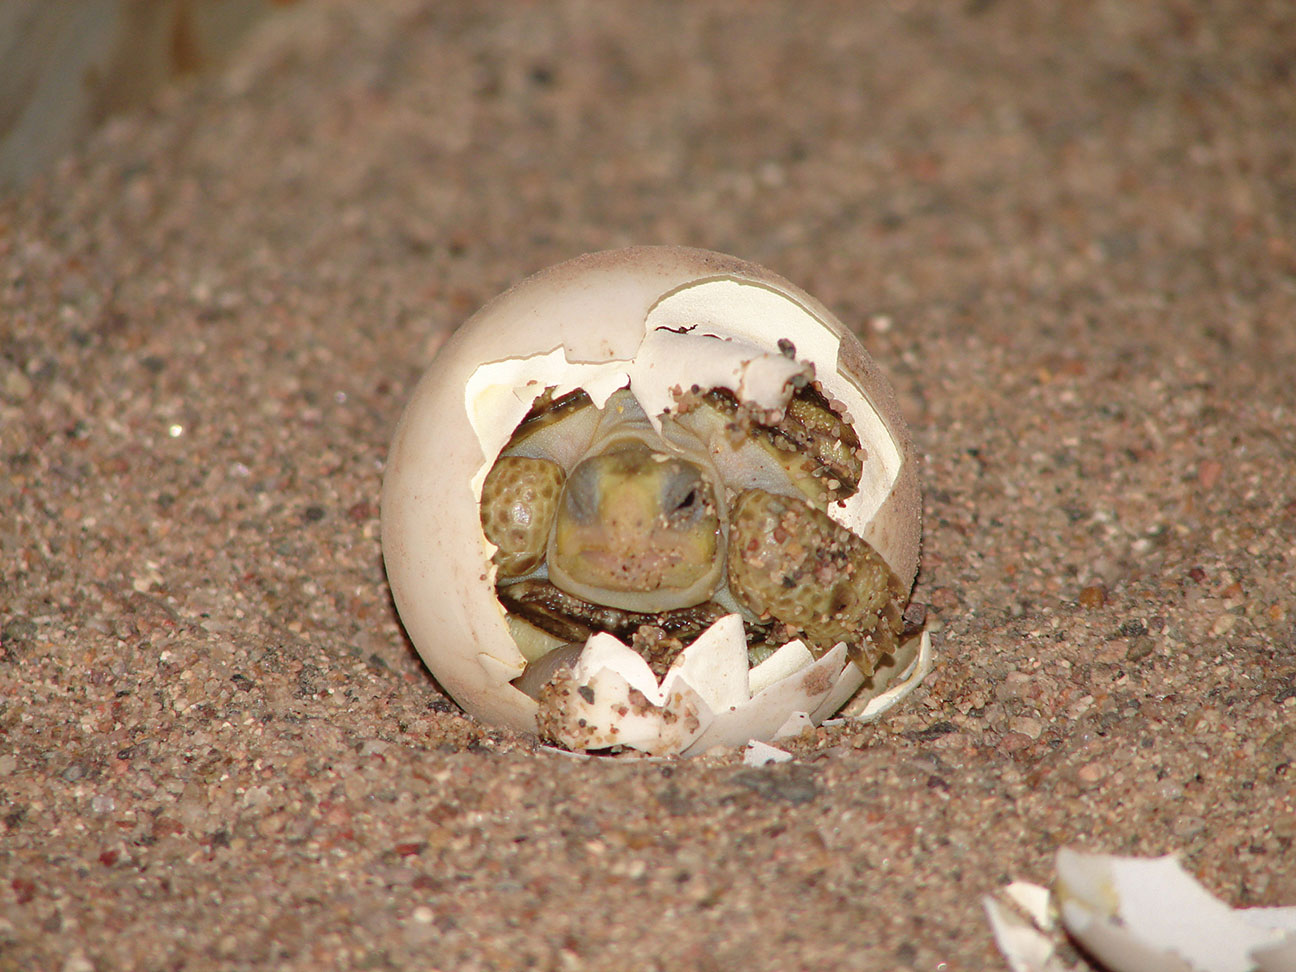 Photograph of a hatchling at Ladder Ranch by Steve Dobrott